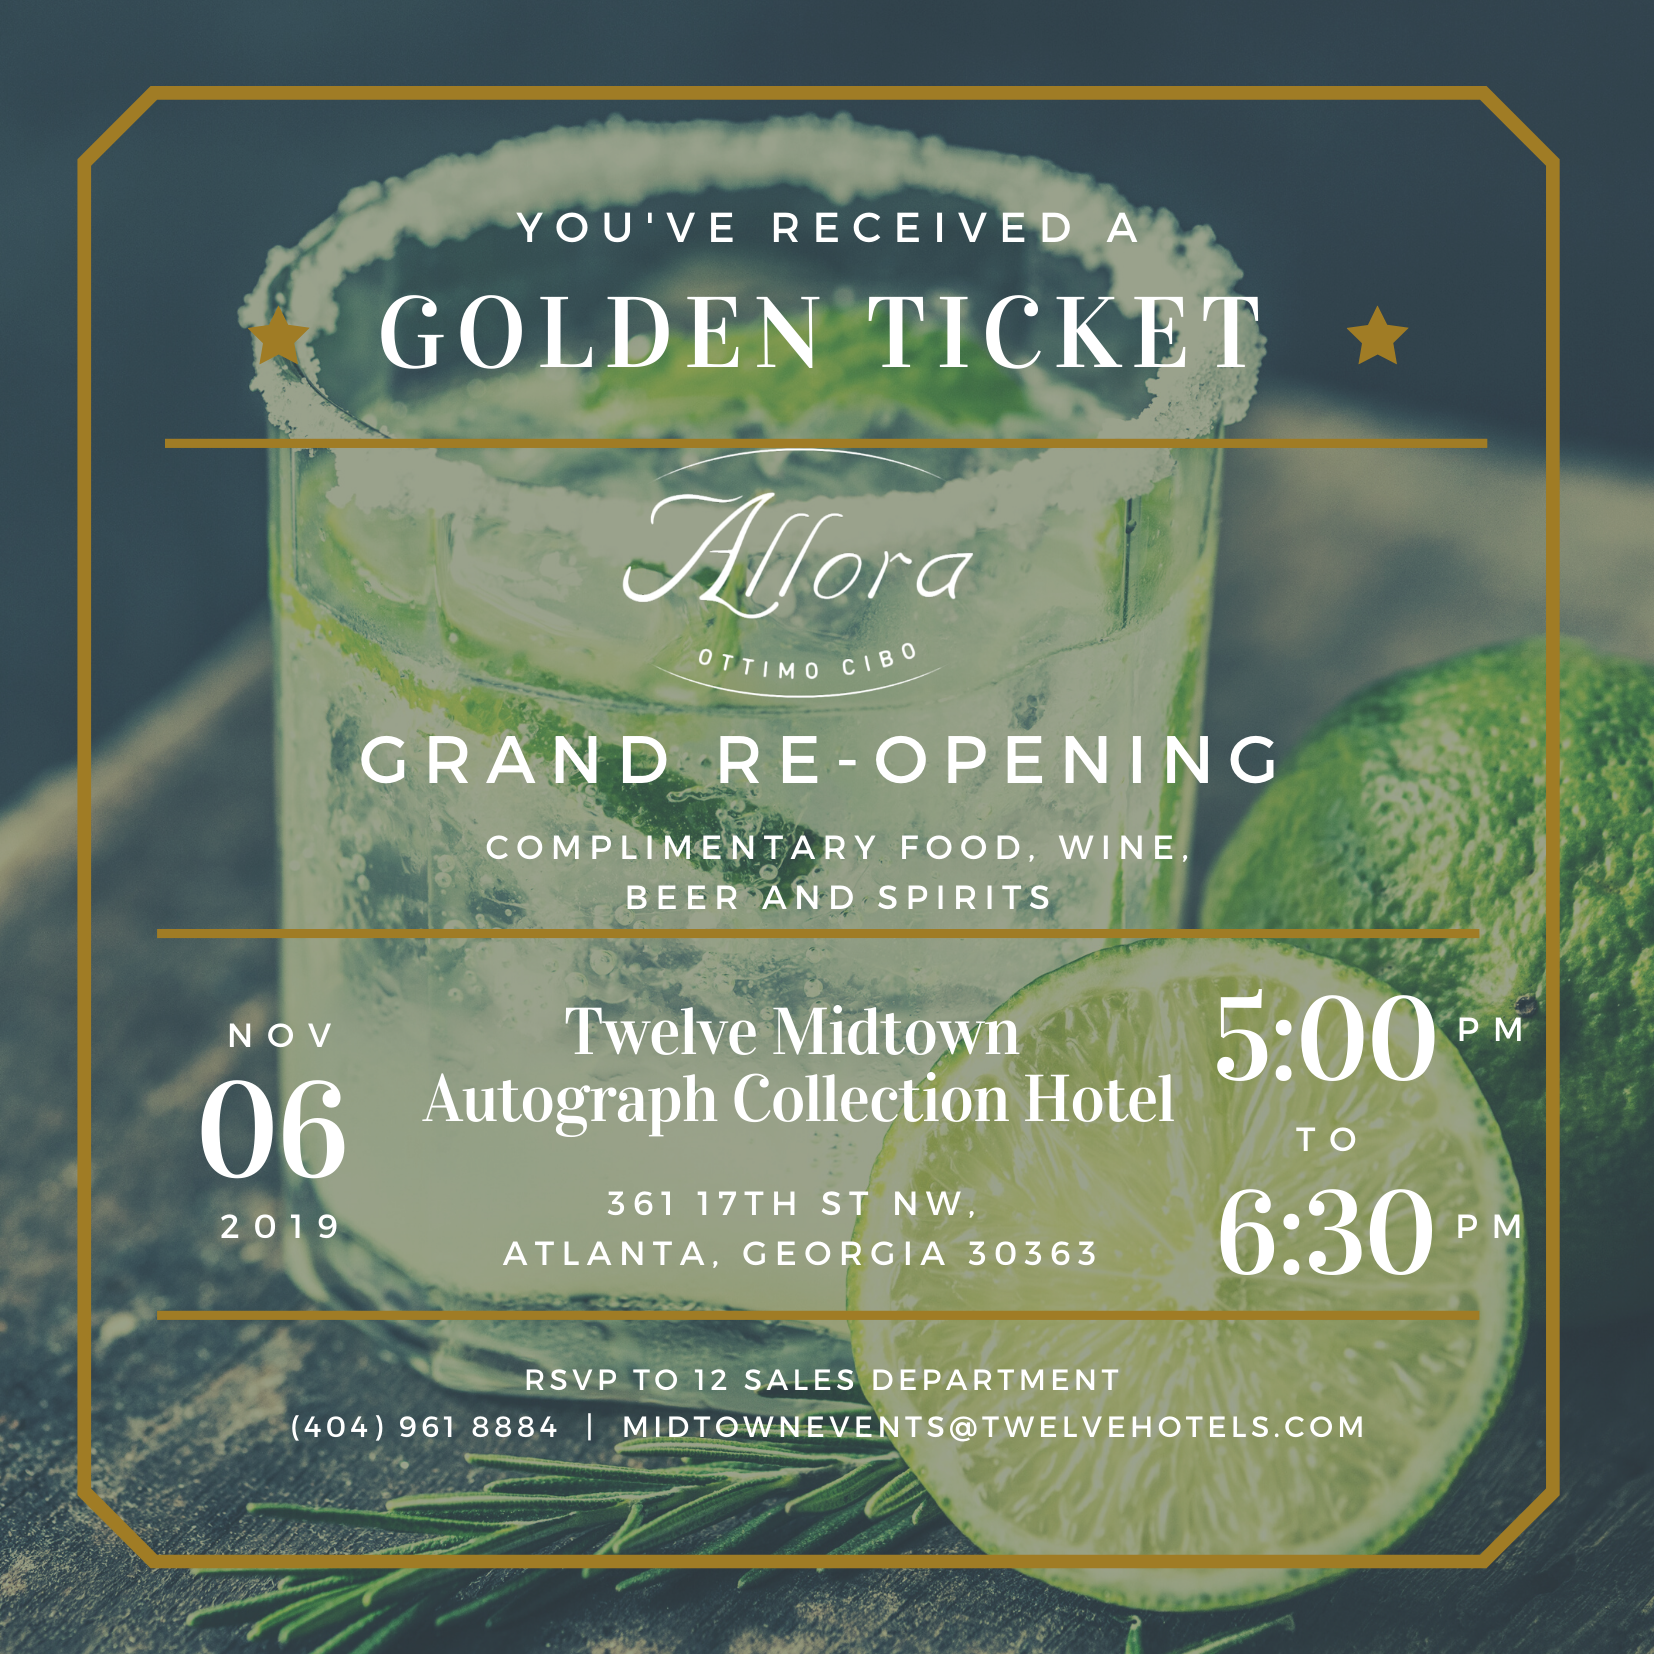 Allora Grand Re-Opening